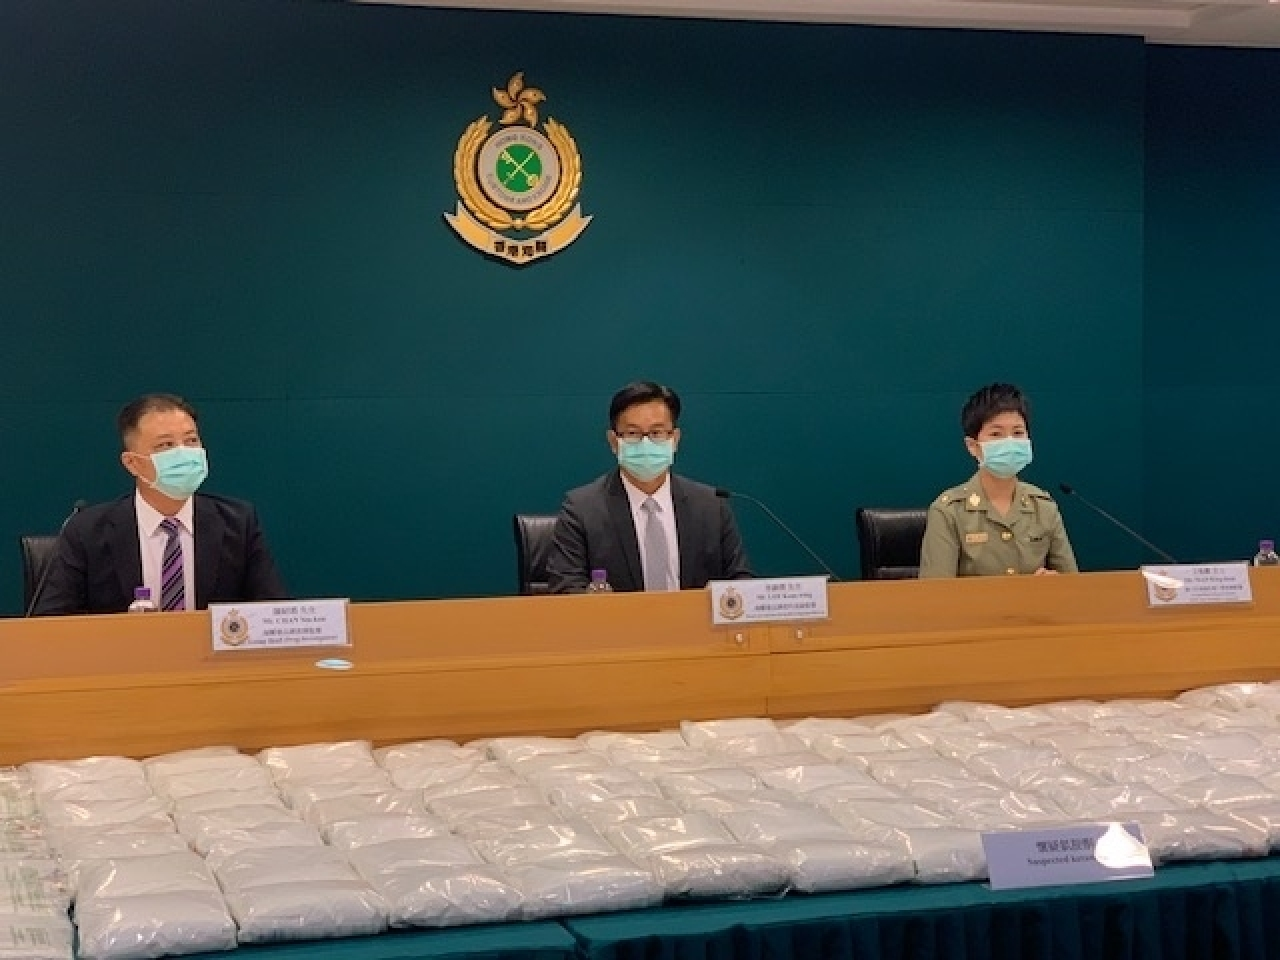 Customs officials say drug traffickers have increasingly opted for sea routes because of the pandemic. Photo: RTHK